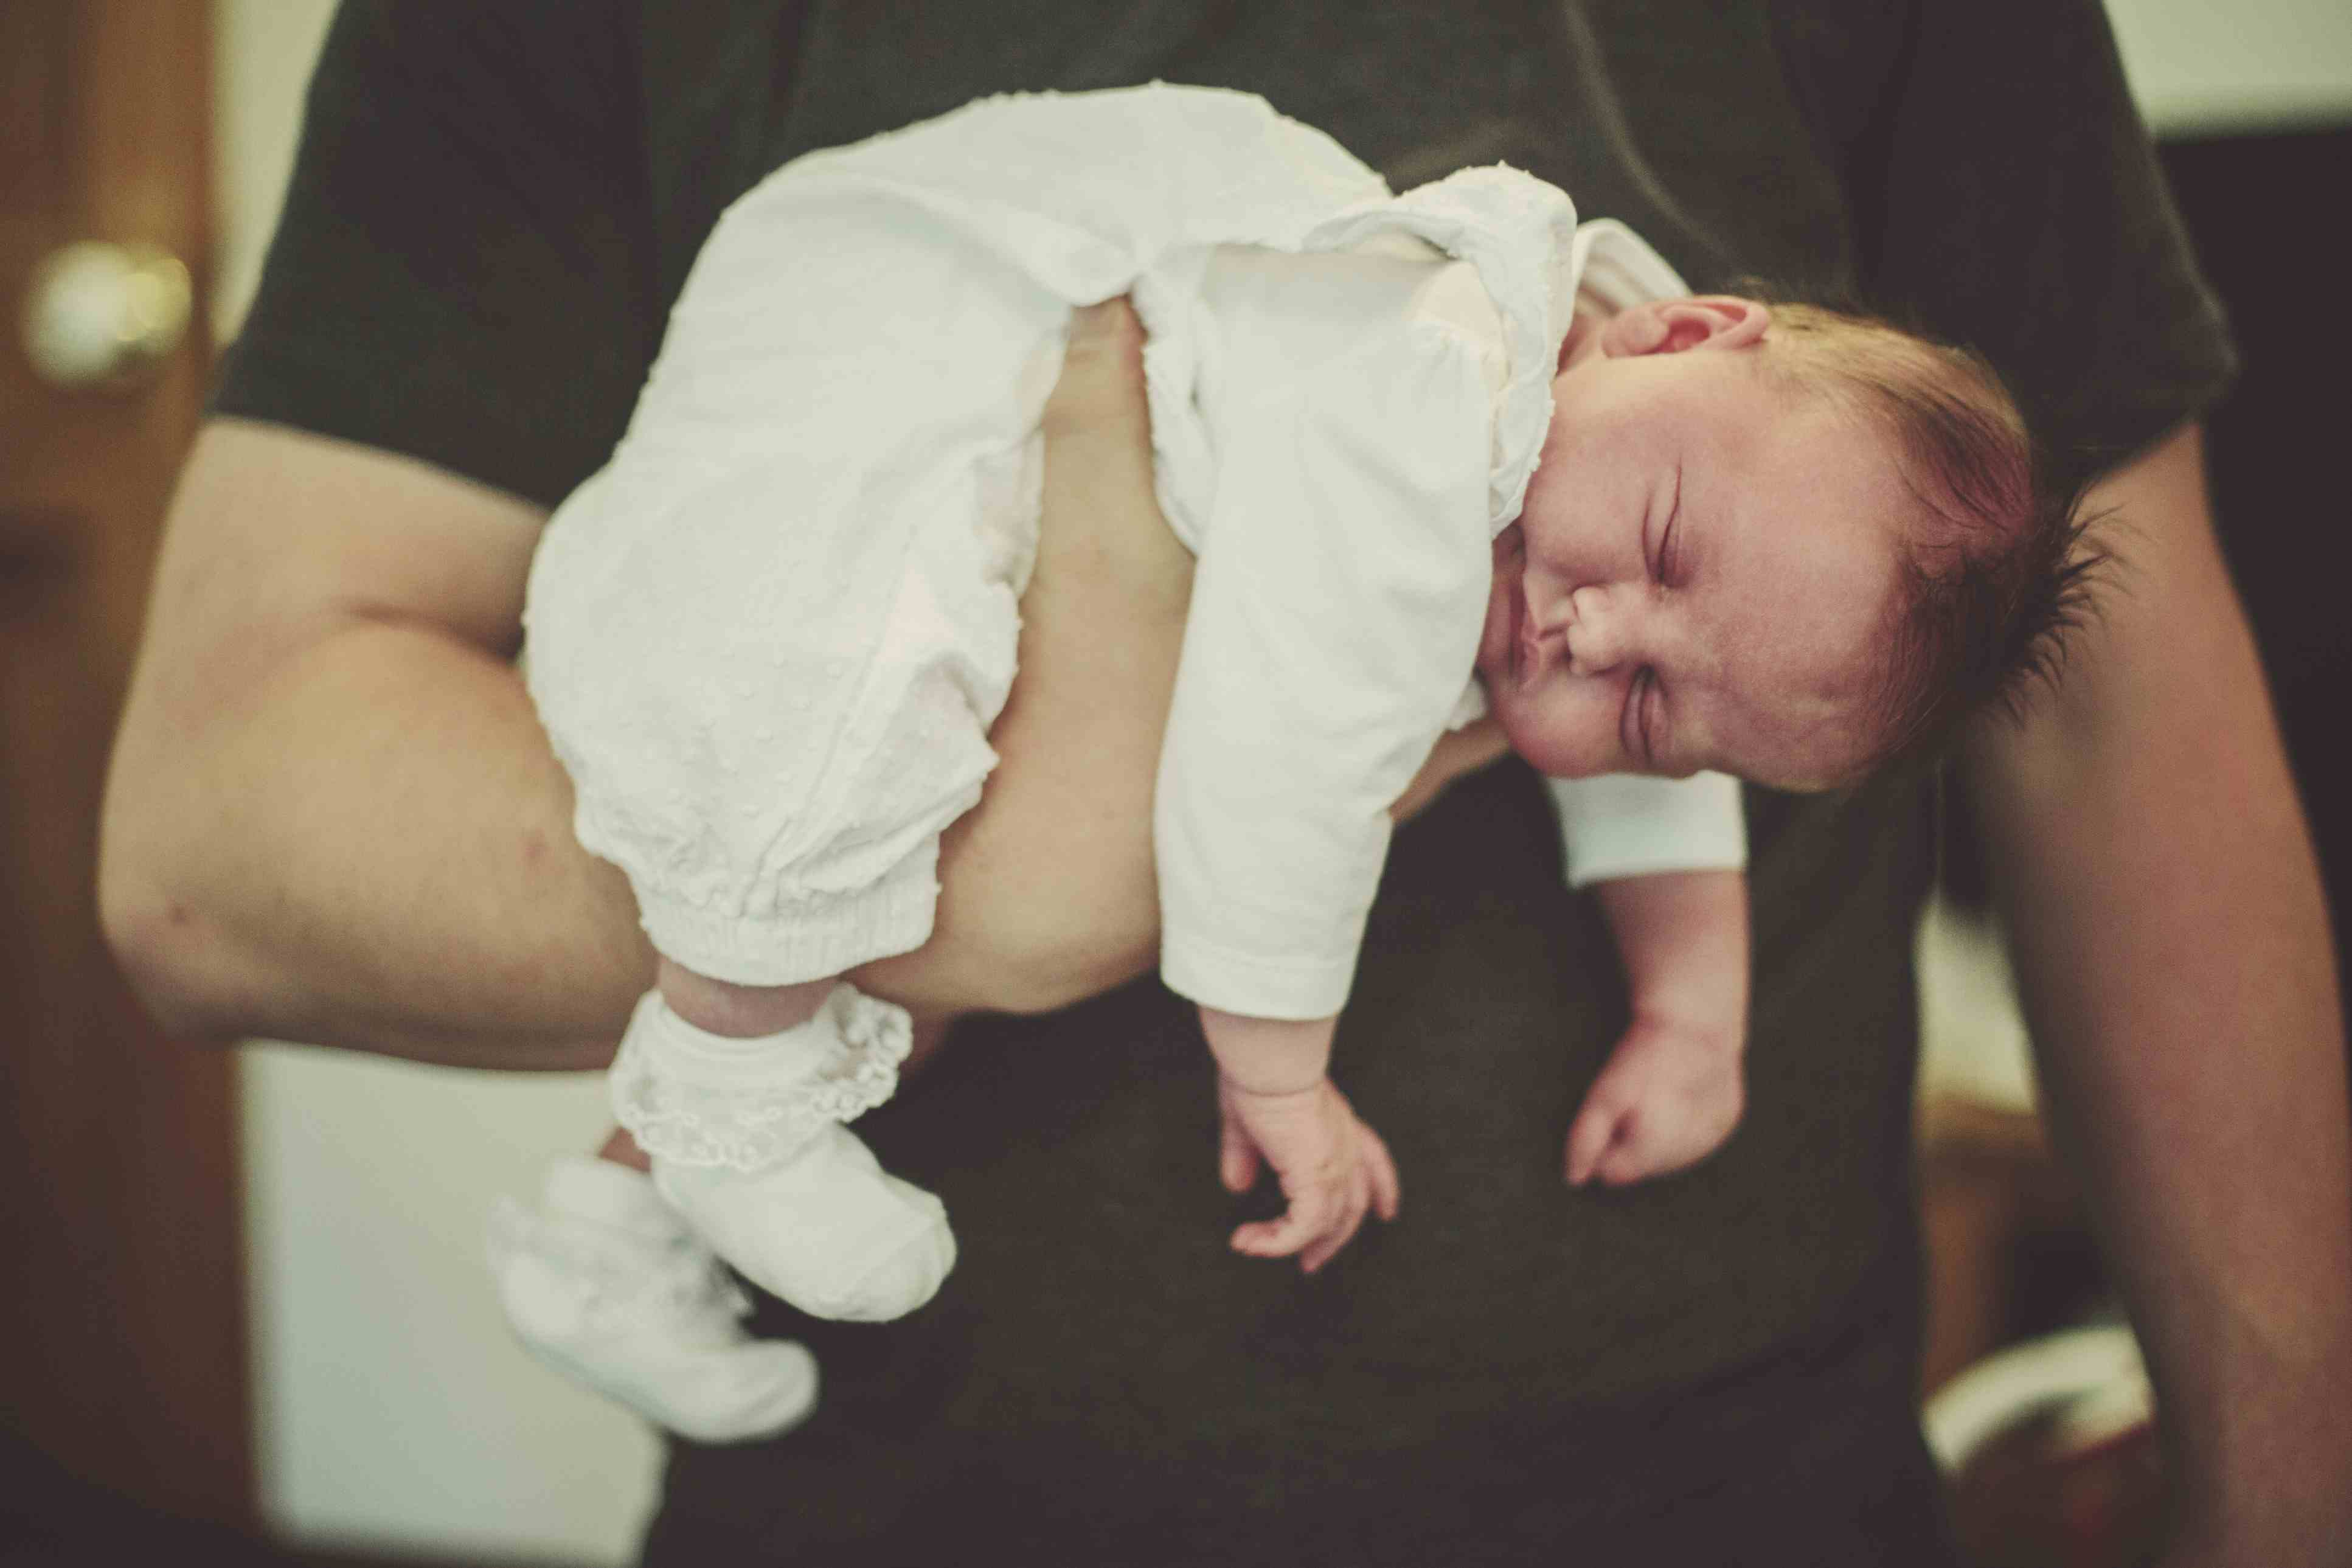 How To Hold A Baby I 8 Safe And Gentle Positions - Timmi Store